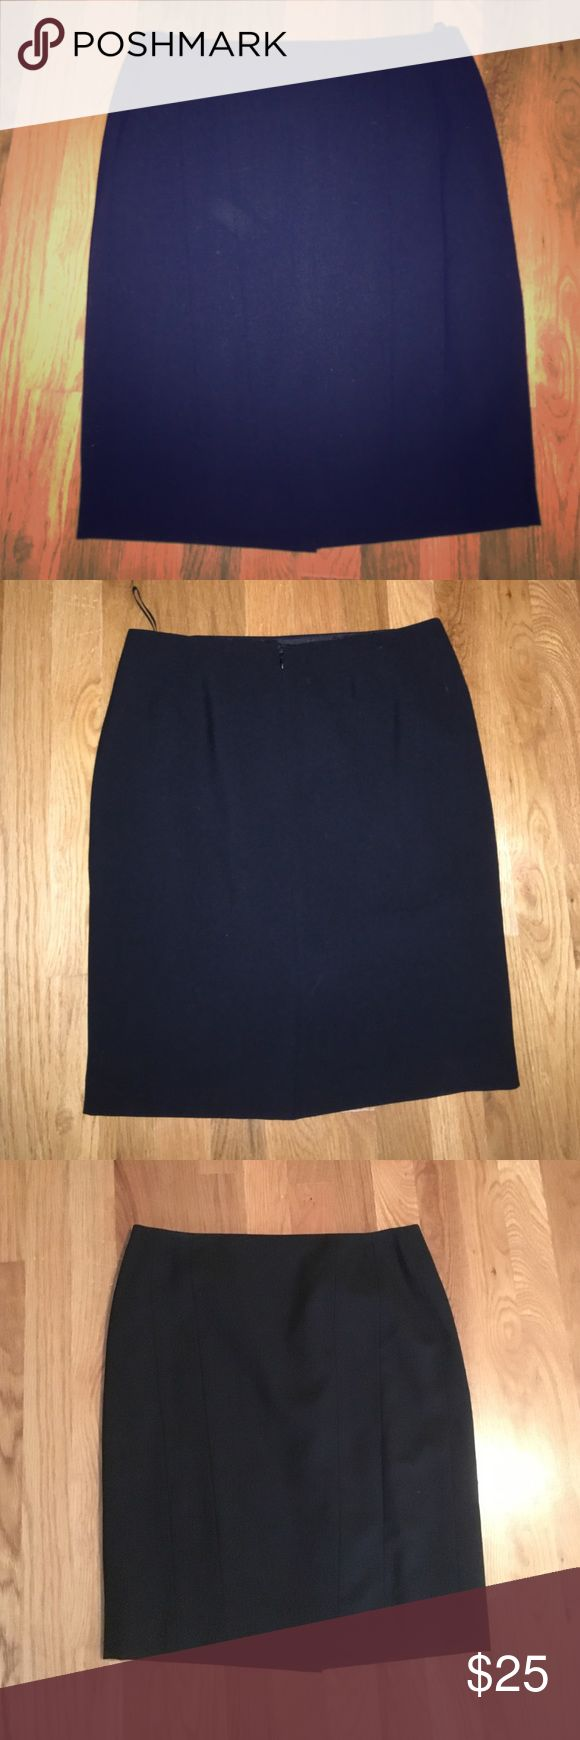 Anne Klein Black Ladies Suit Separates Skirt Anne Klein Black Ladies Suit Separates Skirt Size 2. Never worn so excellent condition. Can provide additional photos on request. Anne Klein Skirts Pencil